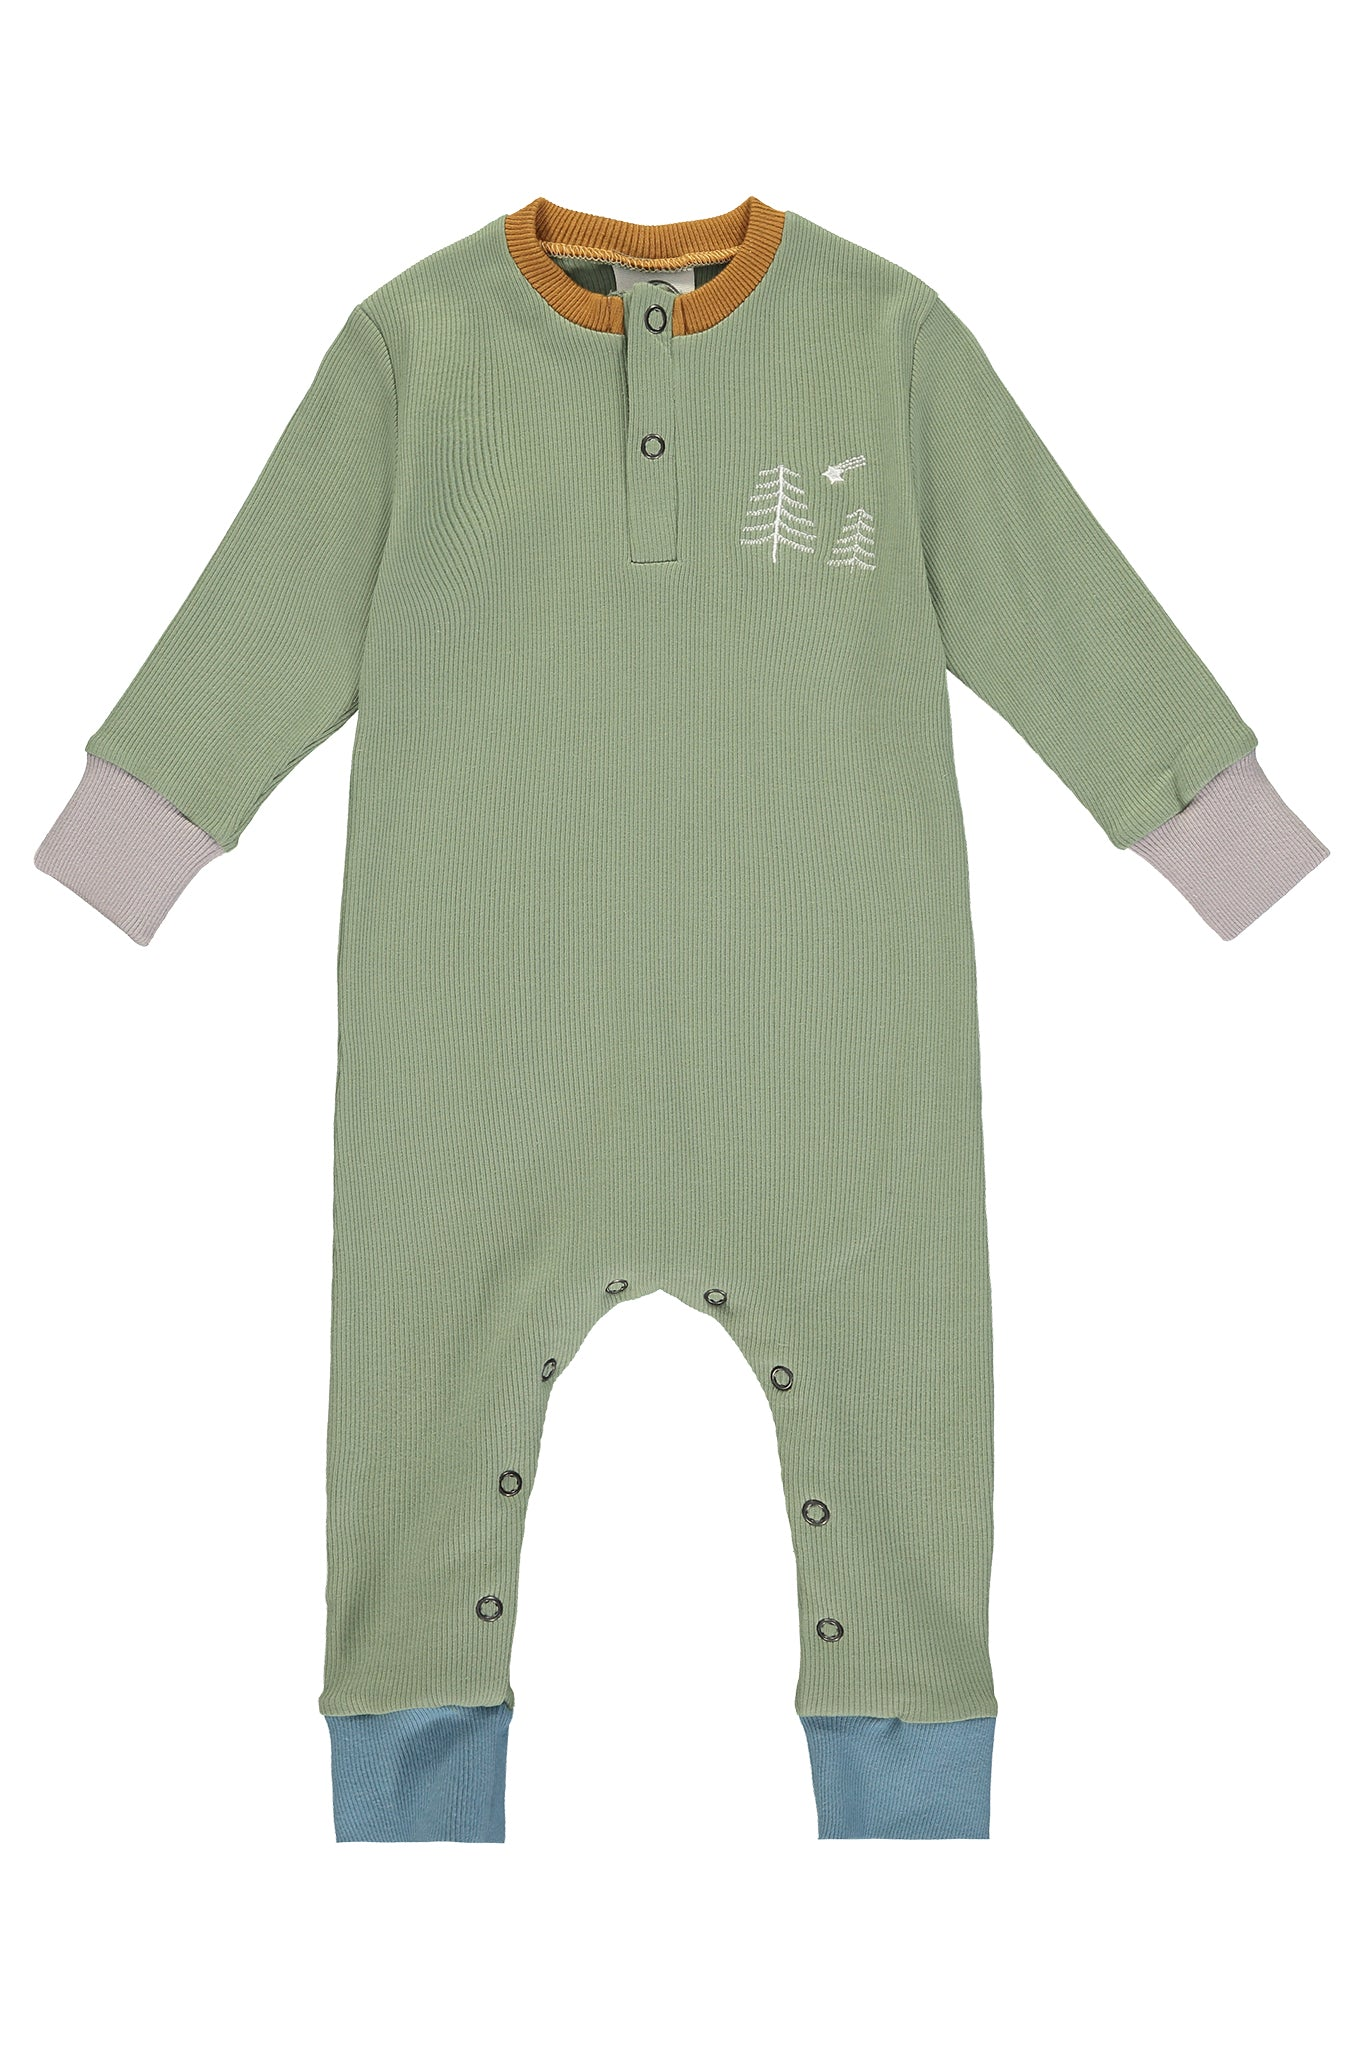 MONTY SLEEPSUIT - CHRISTMAS SPECIAL SAGE - The Bright Company